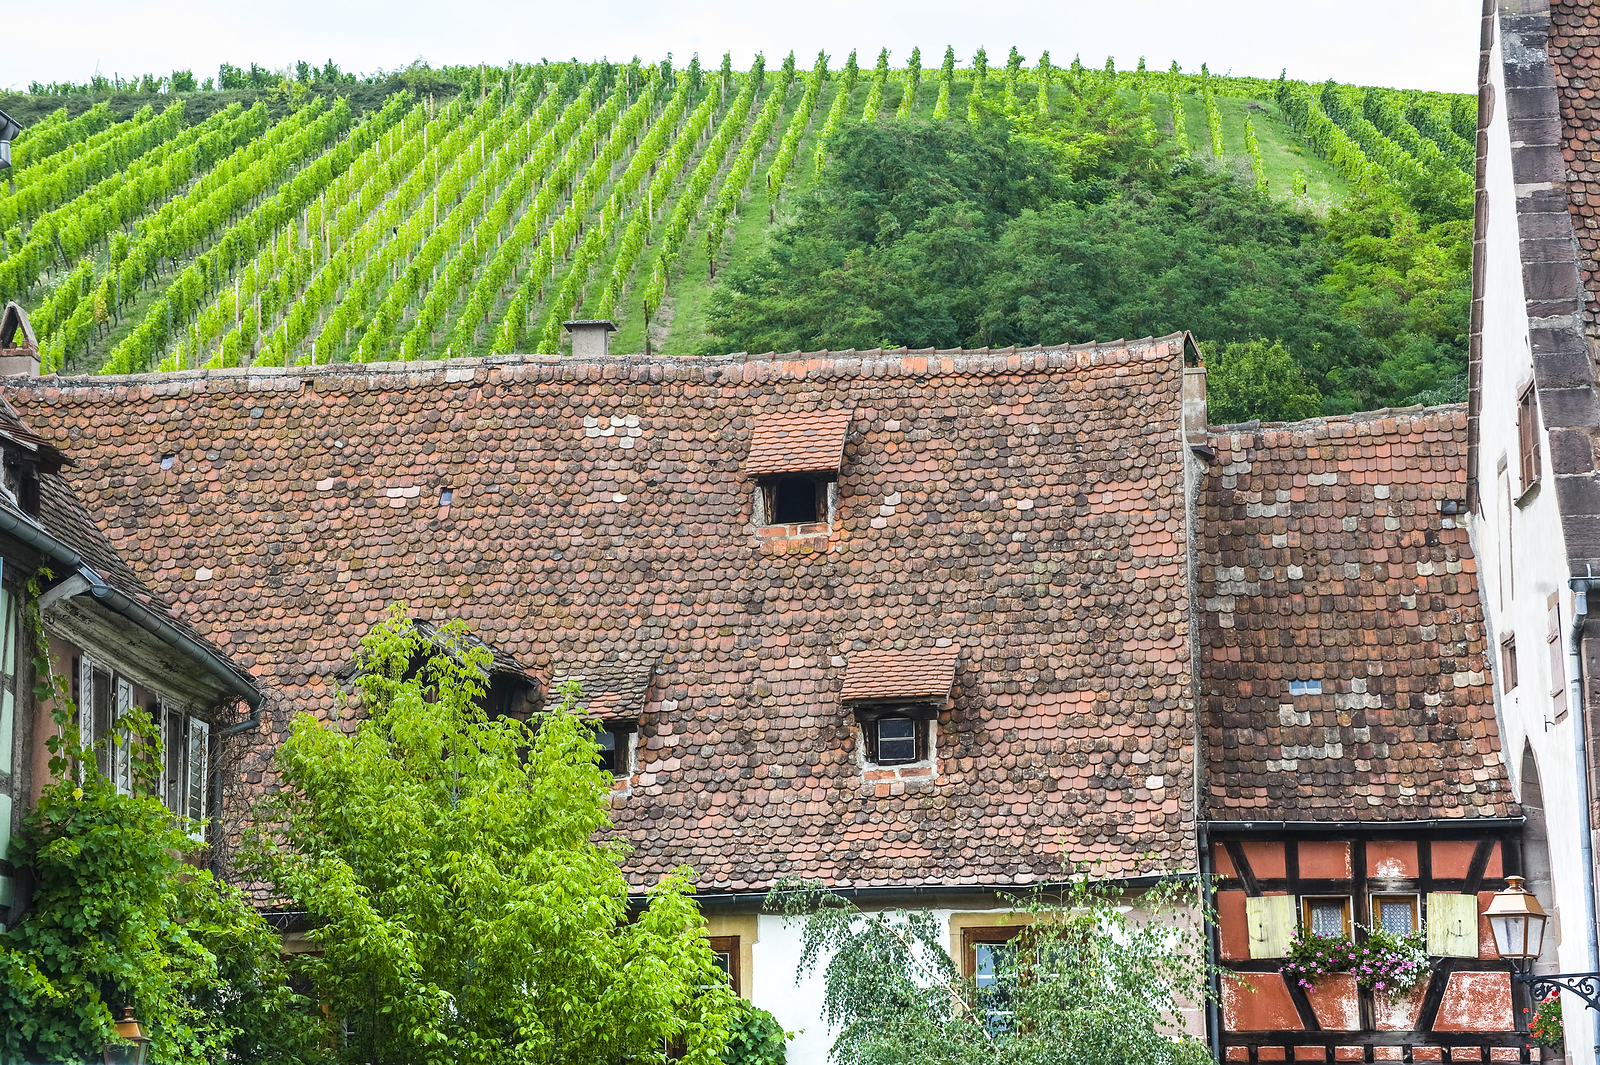 The Schoenenbourg vineyard above Riquewihr, France.